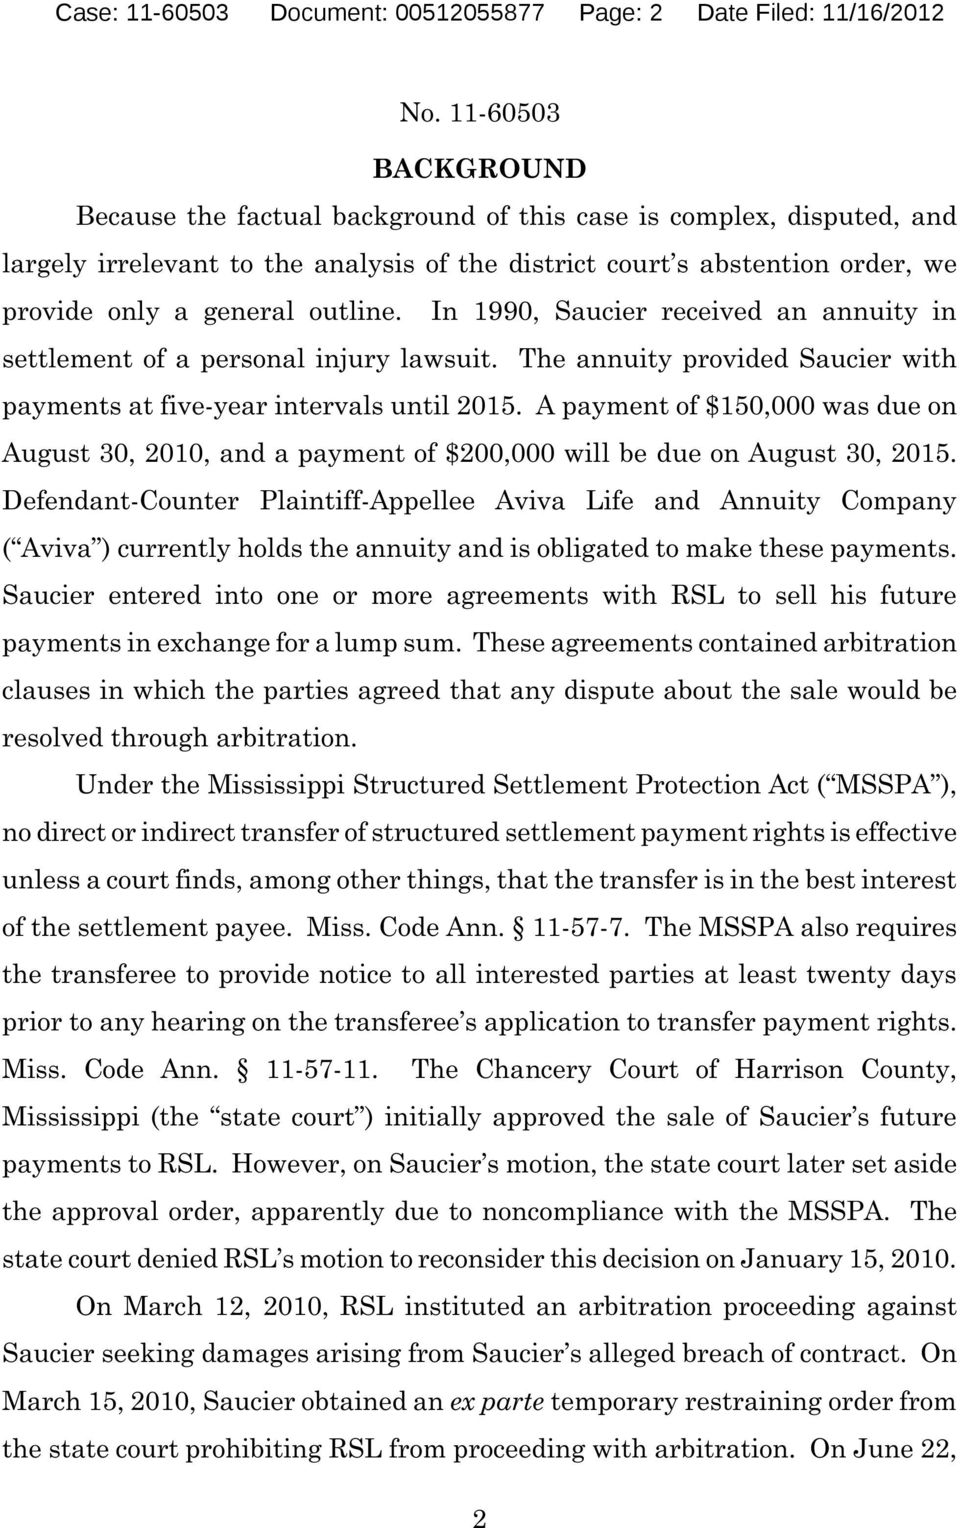 The annuity provided Saucier with payments at five-year intervals until 2015. A payment of $150,000 was due on August 30, 2010, and a payment of $200,000 will be due on August 30, 2015.